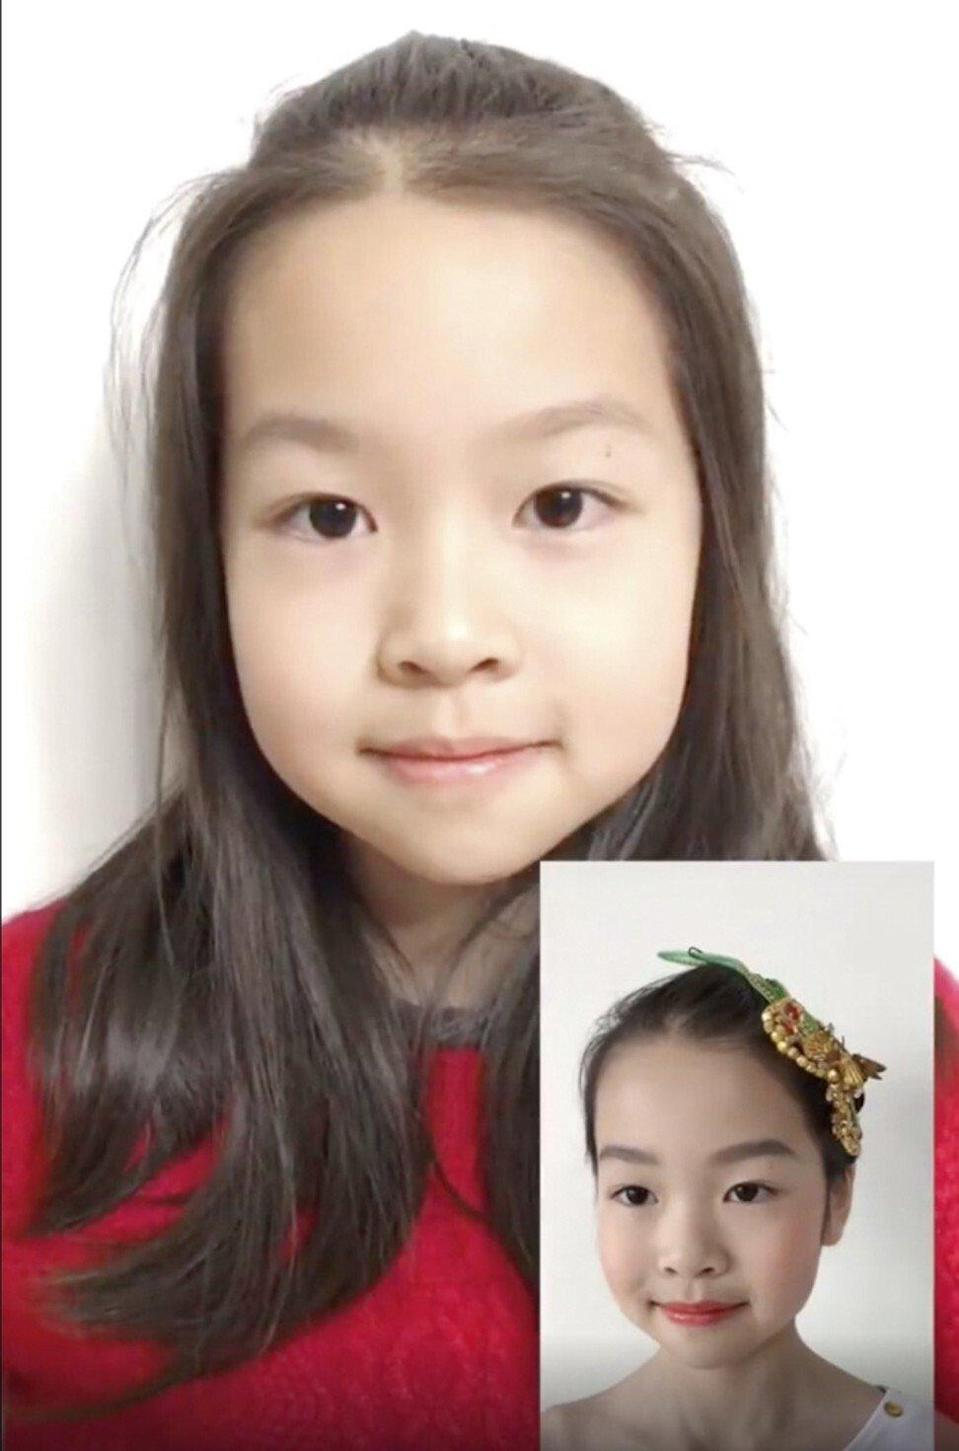 A child beauty vlogger in China.